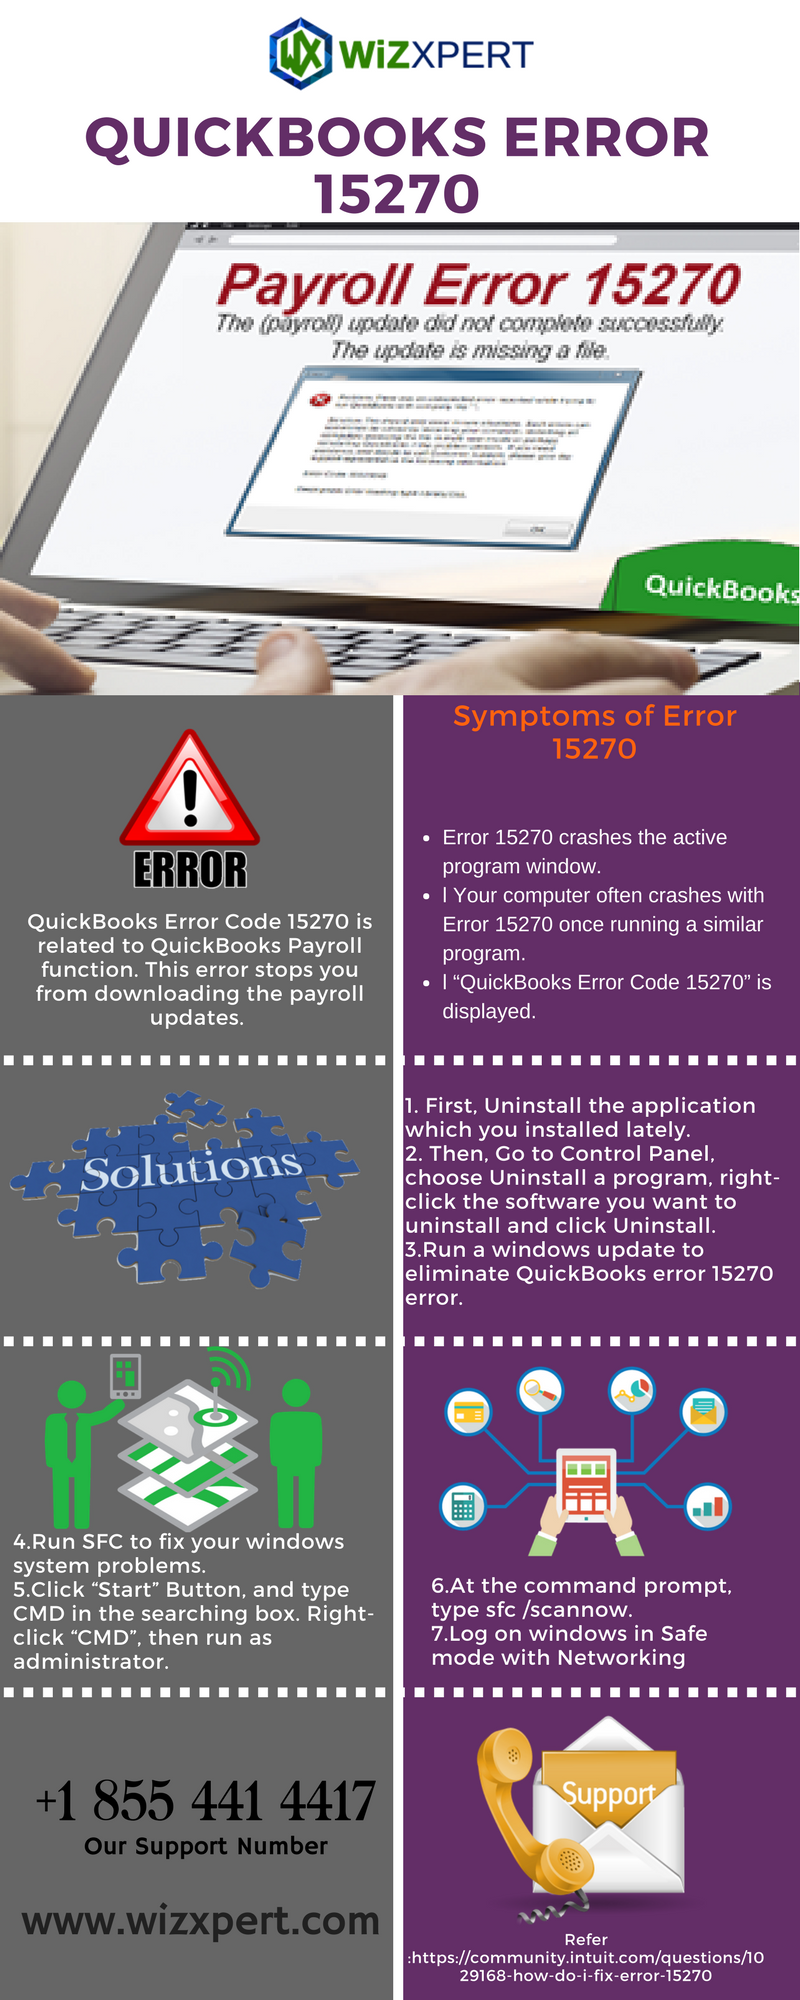 What is QuickBooks Error 15270 (Payroll)? How to fix it?